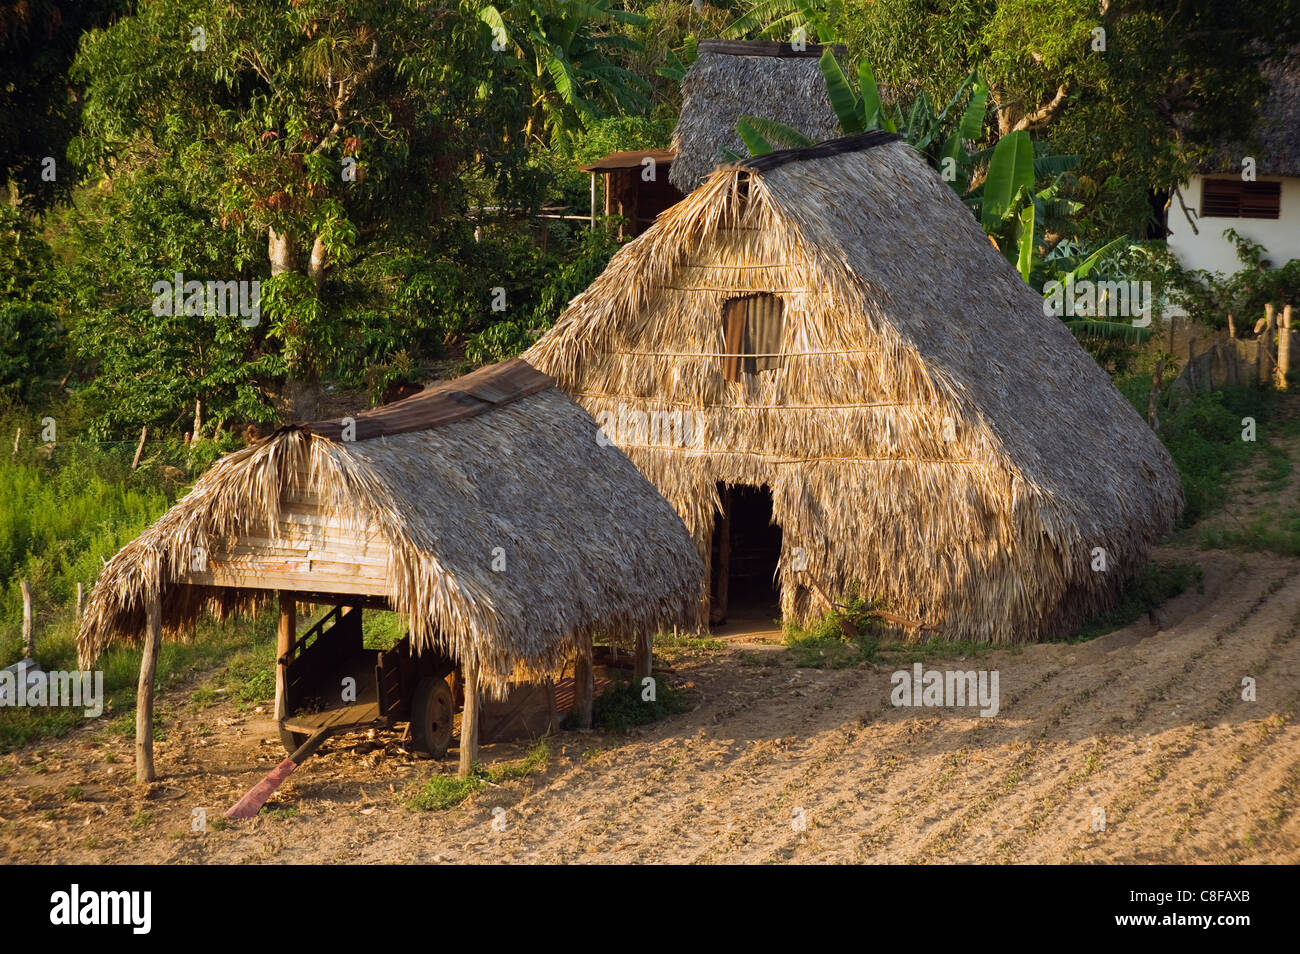 Thatched roof tobacco drying house, UNESCO World Heritage Site, Vinales Valley, Cuba, West Indies, Caribbean, Central - Stock Image